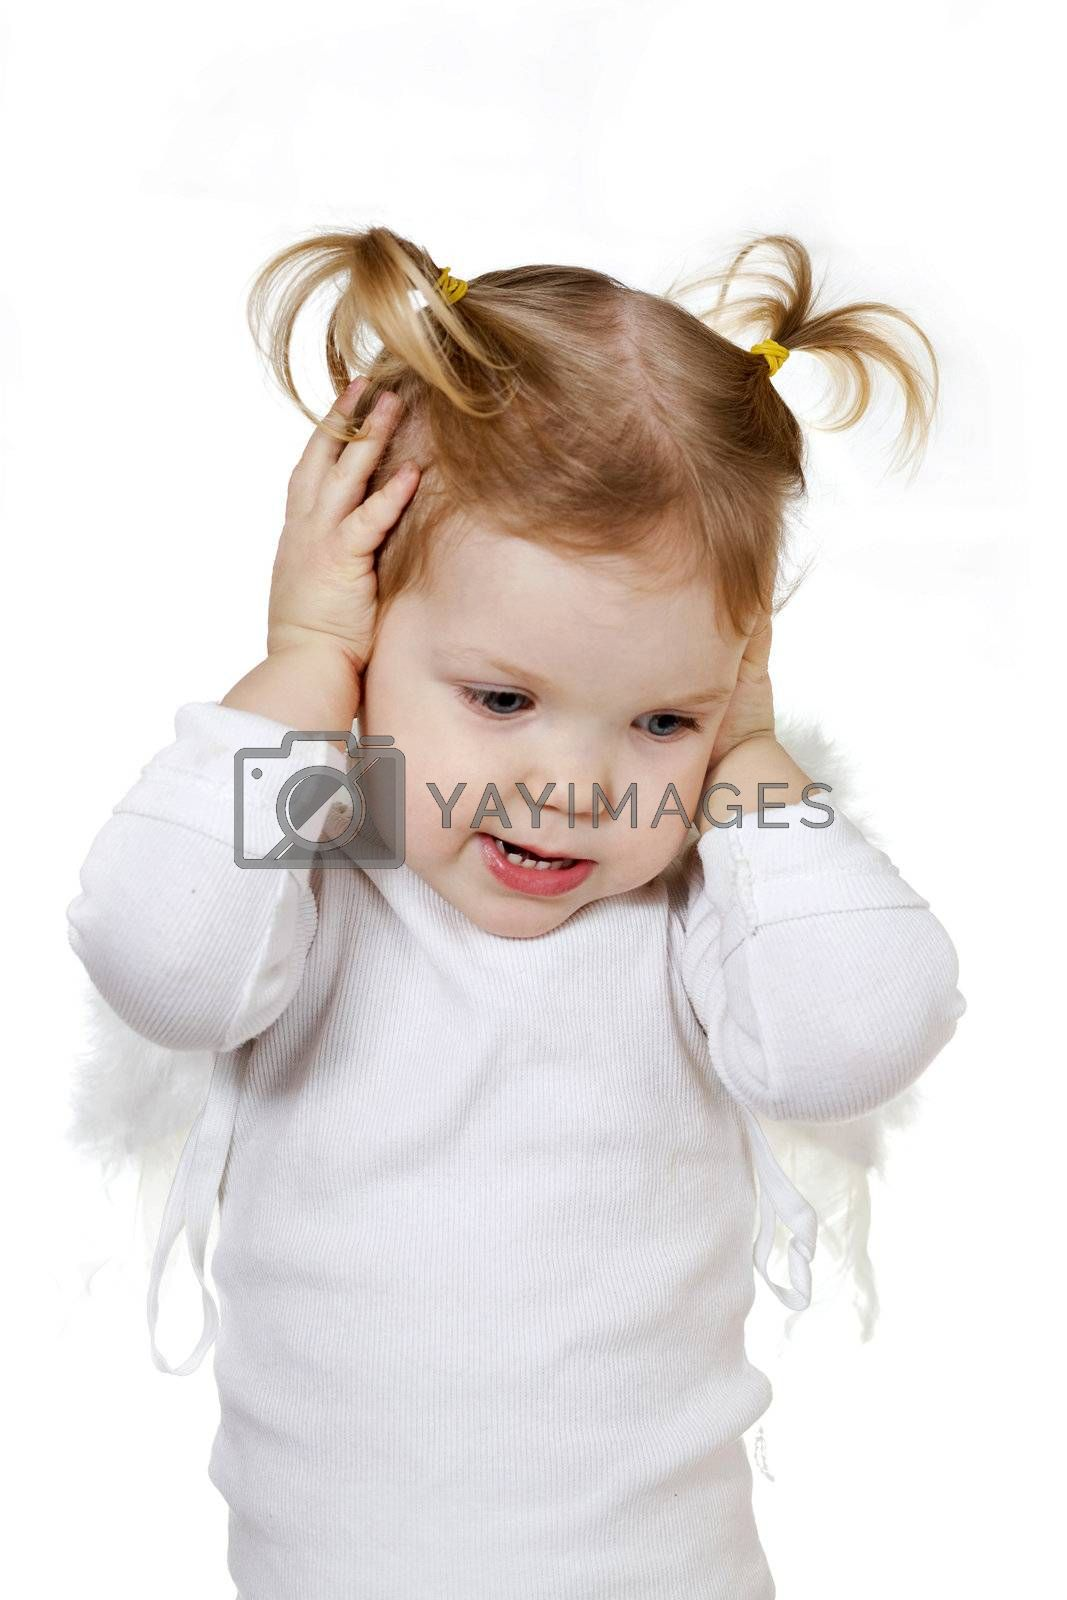 Stock photo: an image of a nice baby in white clothes